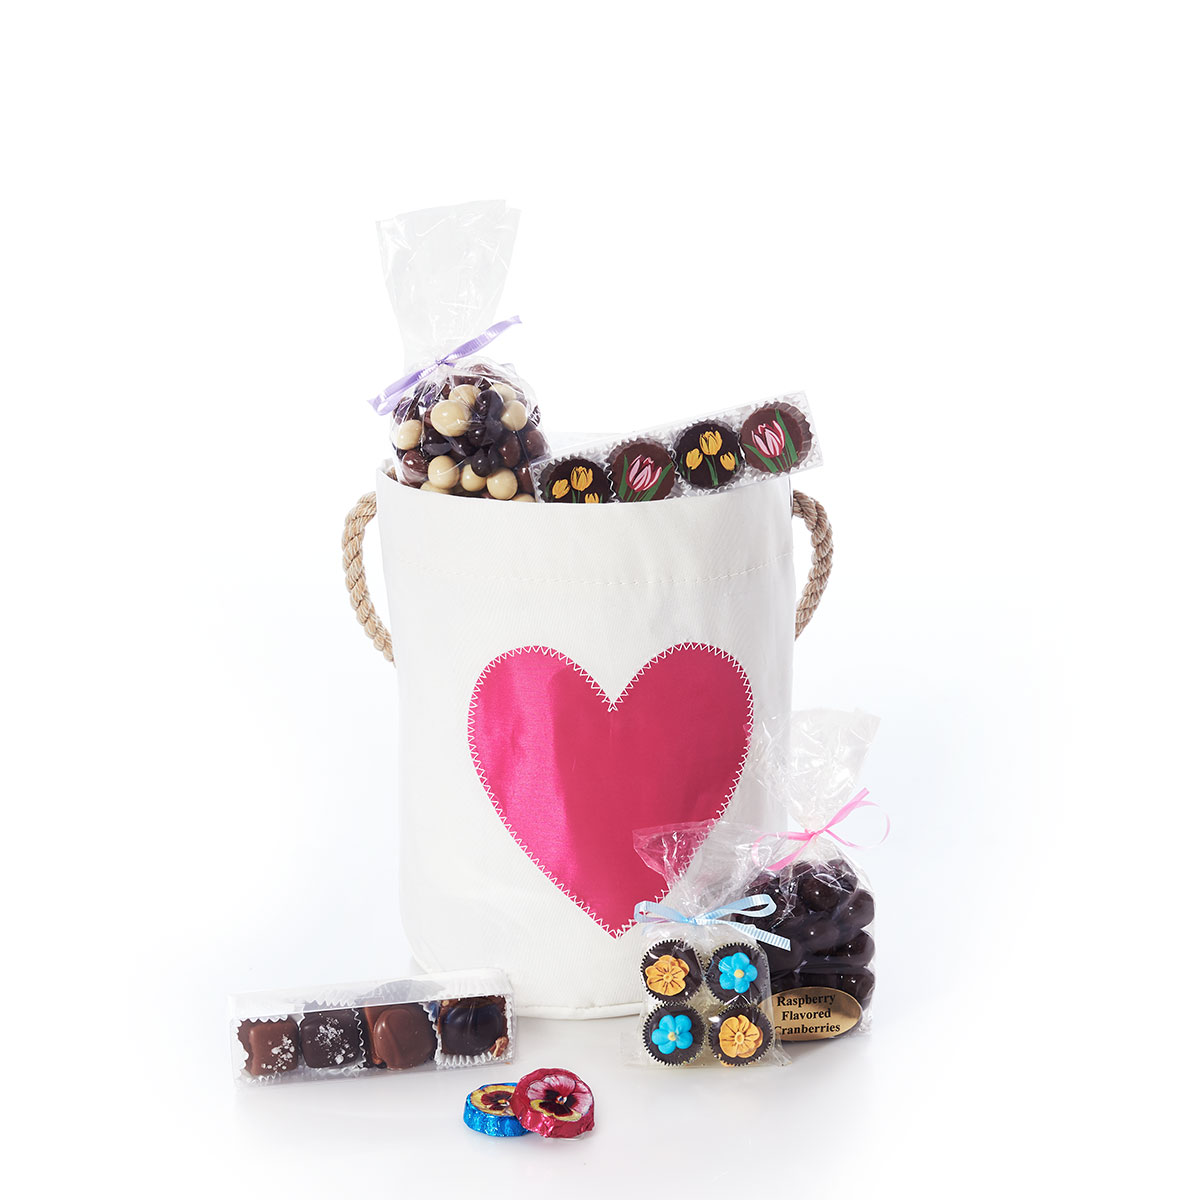 a white recycled sail cloth bucket with a white rope handle is embellished with a fuchsia pink heart, and it is surrounded by the chocolate gift set